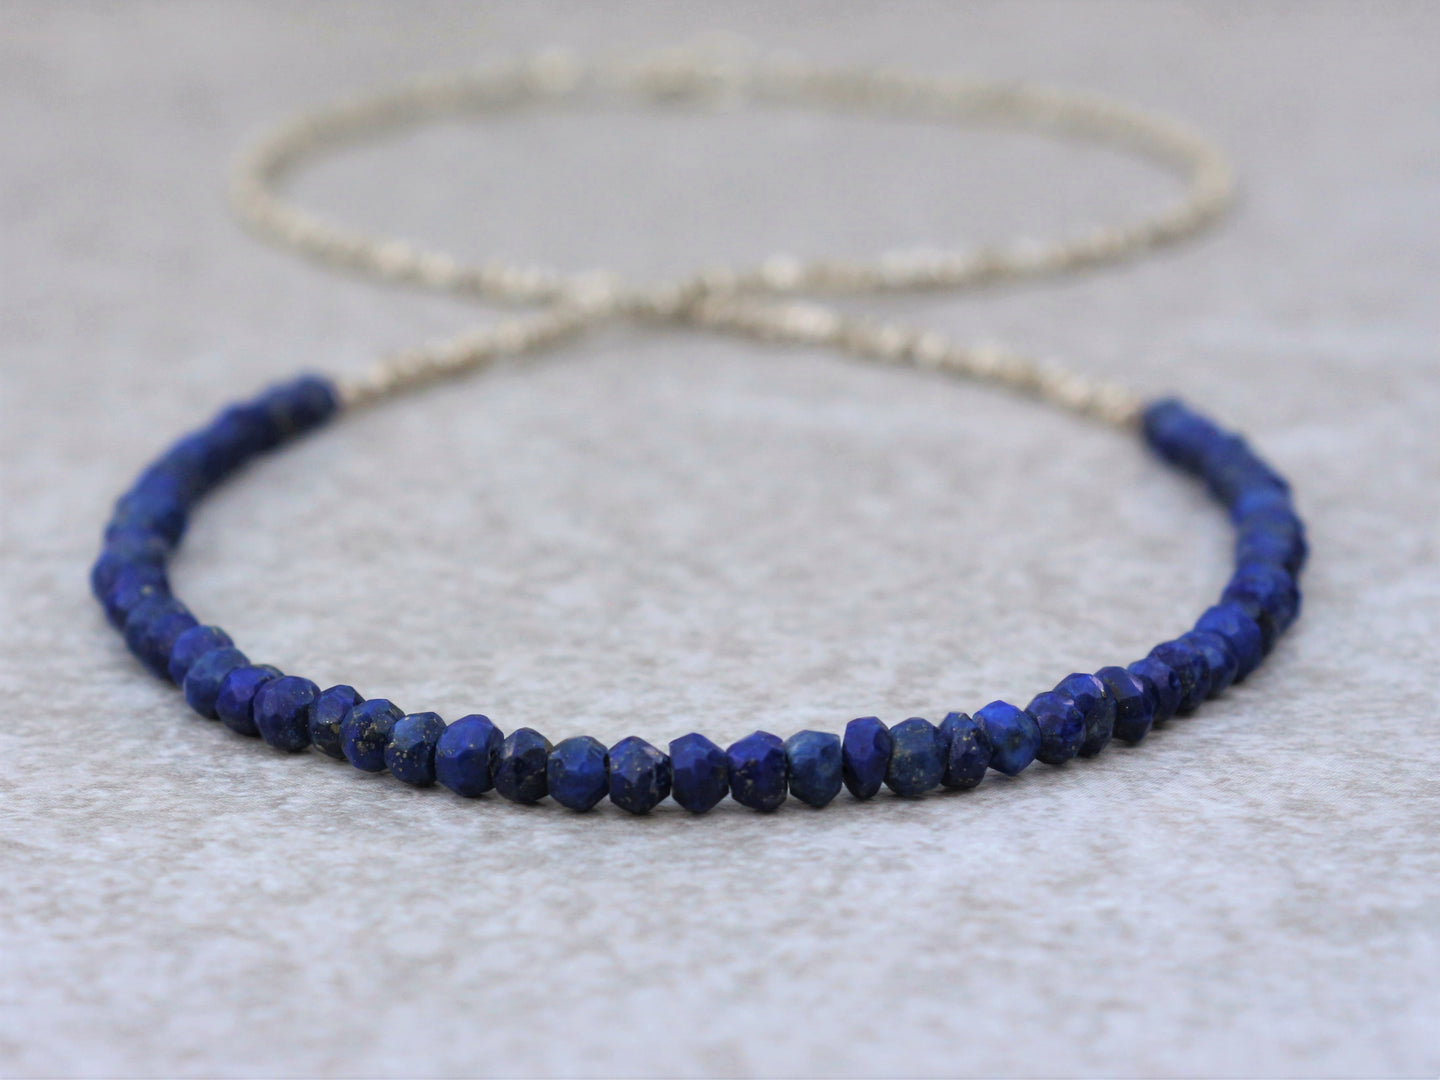 Lapis_lazuli_beaded_necklace_for_women_statement